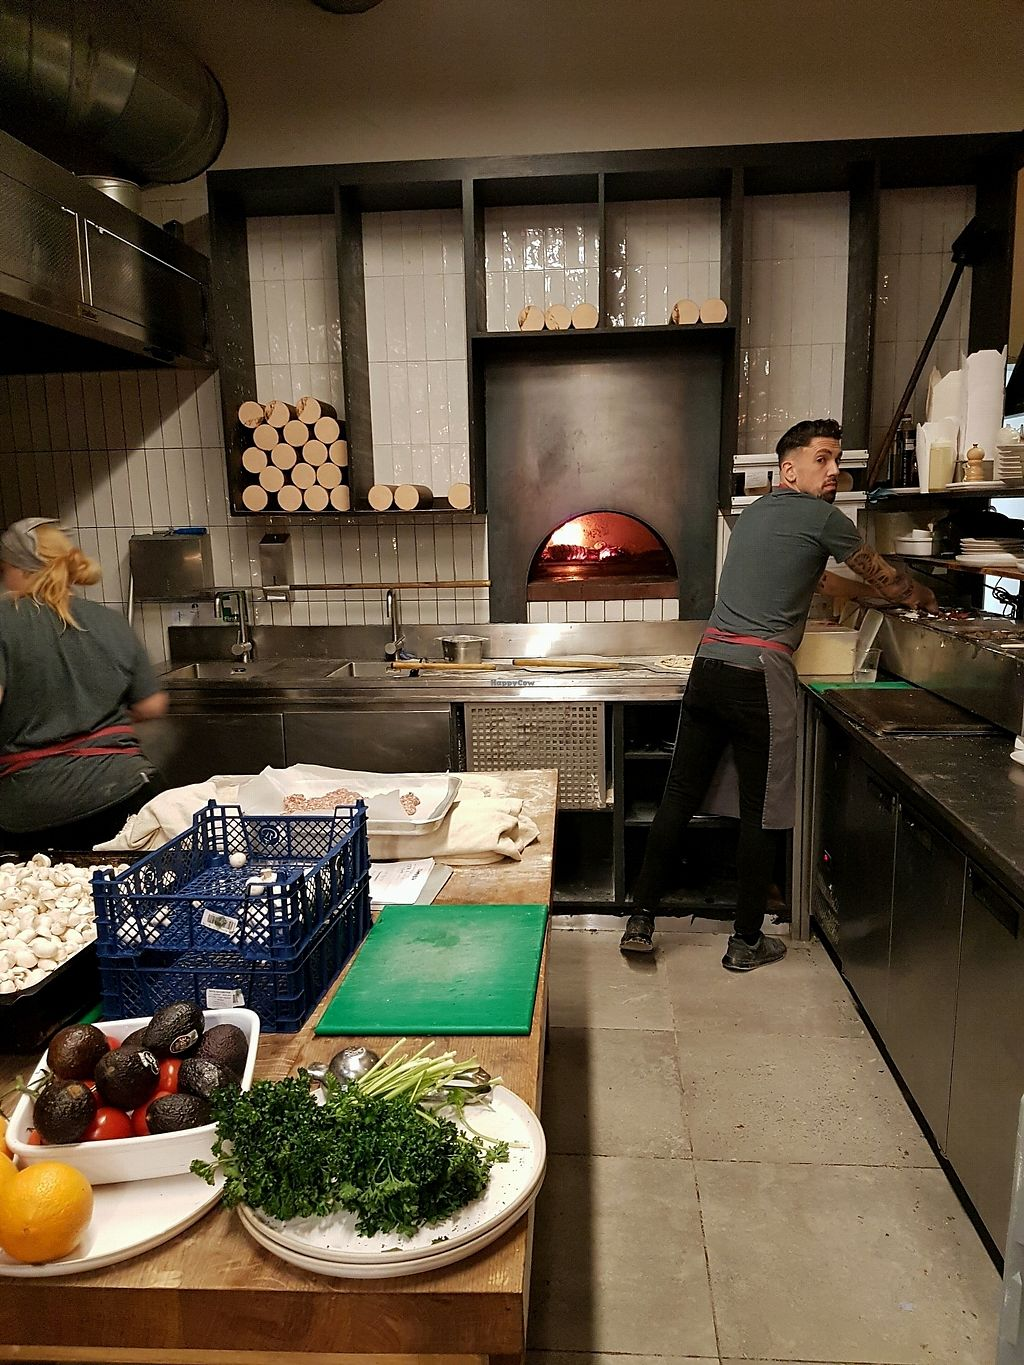 """Photo of Pinkmans  by <a href=""""/members/profile/Lotusblossom"""">Lotusblossom</a> <br/>wood fired oven in the restaurant <br/> October 11, 2017  - <a href='/contact/abuse/image/77847/314289'>Report</a>"""